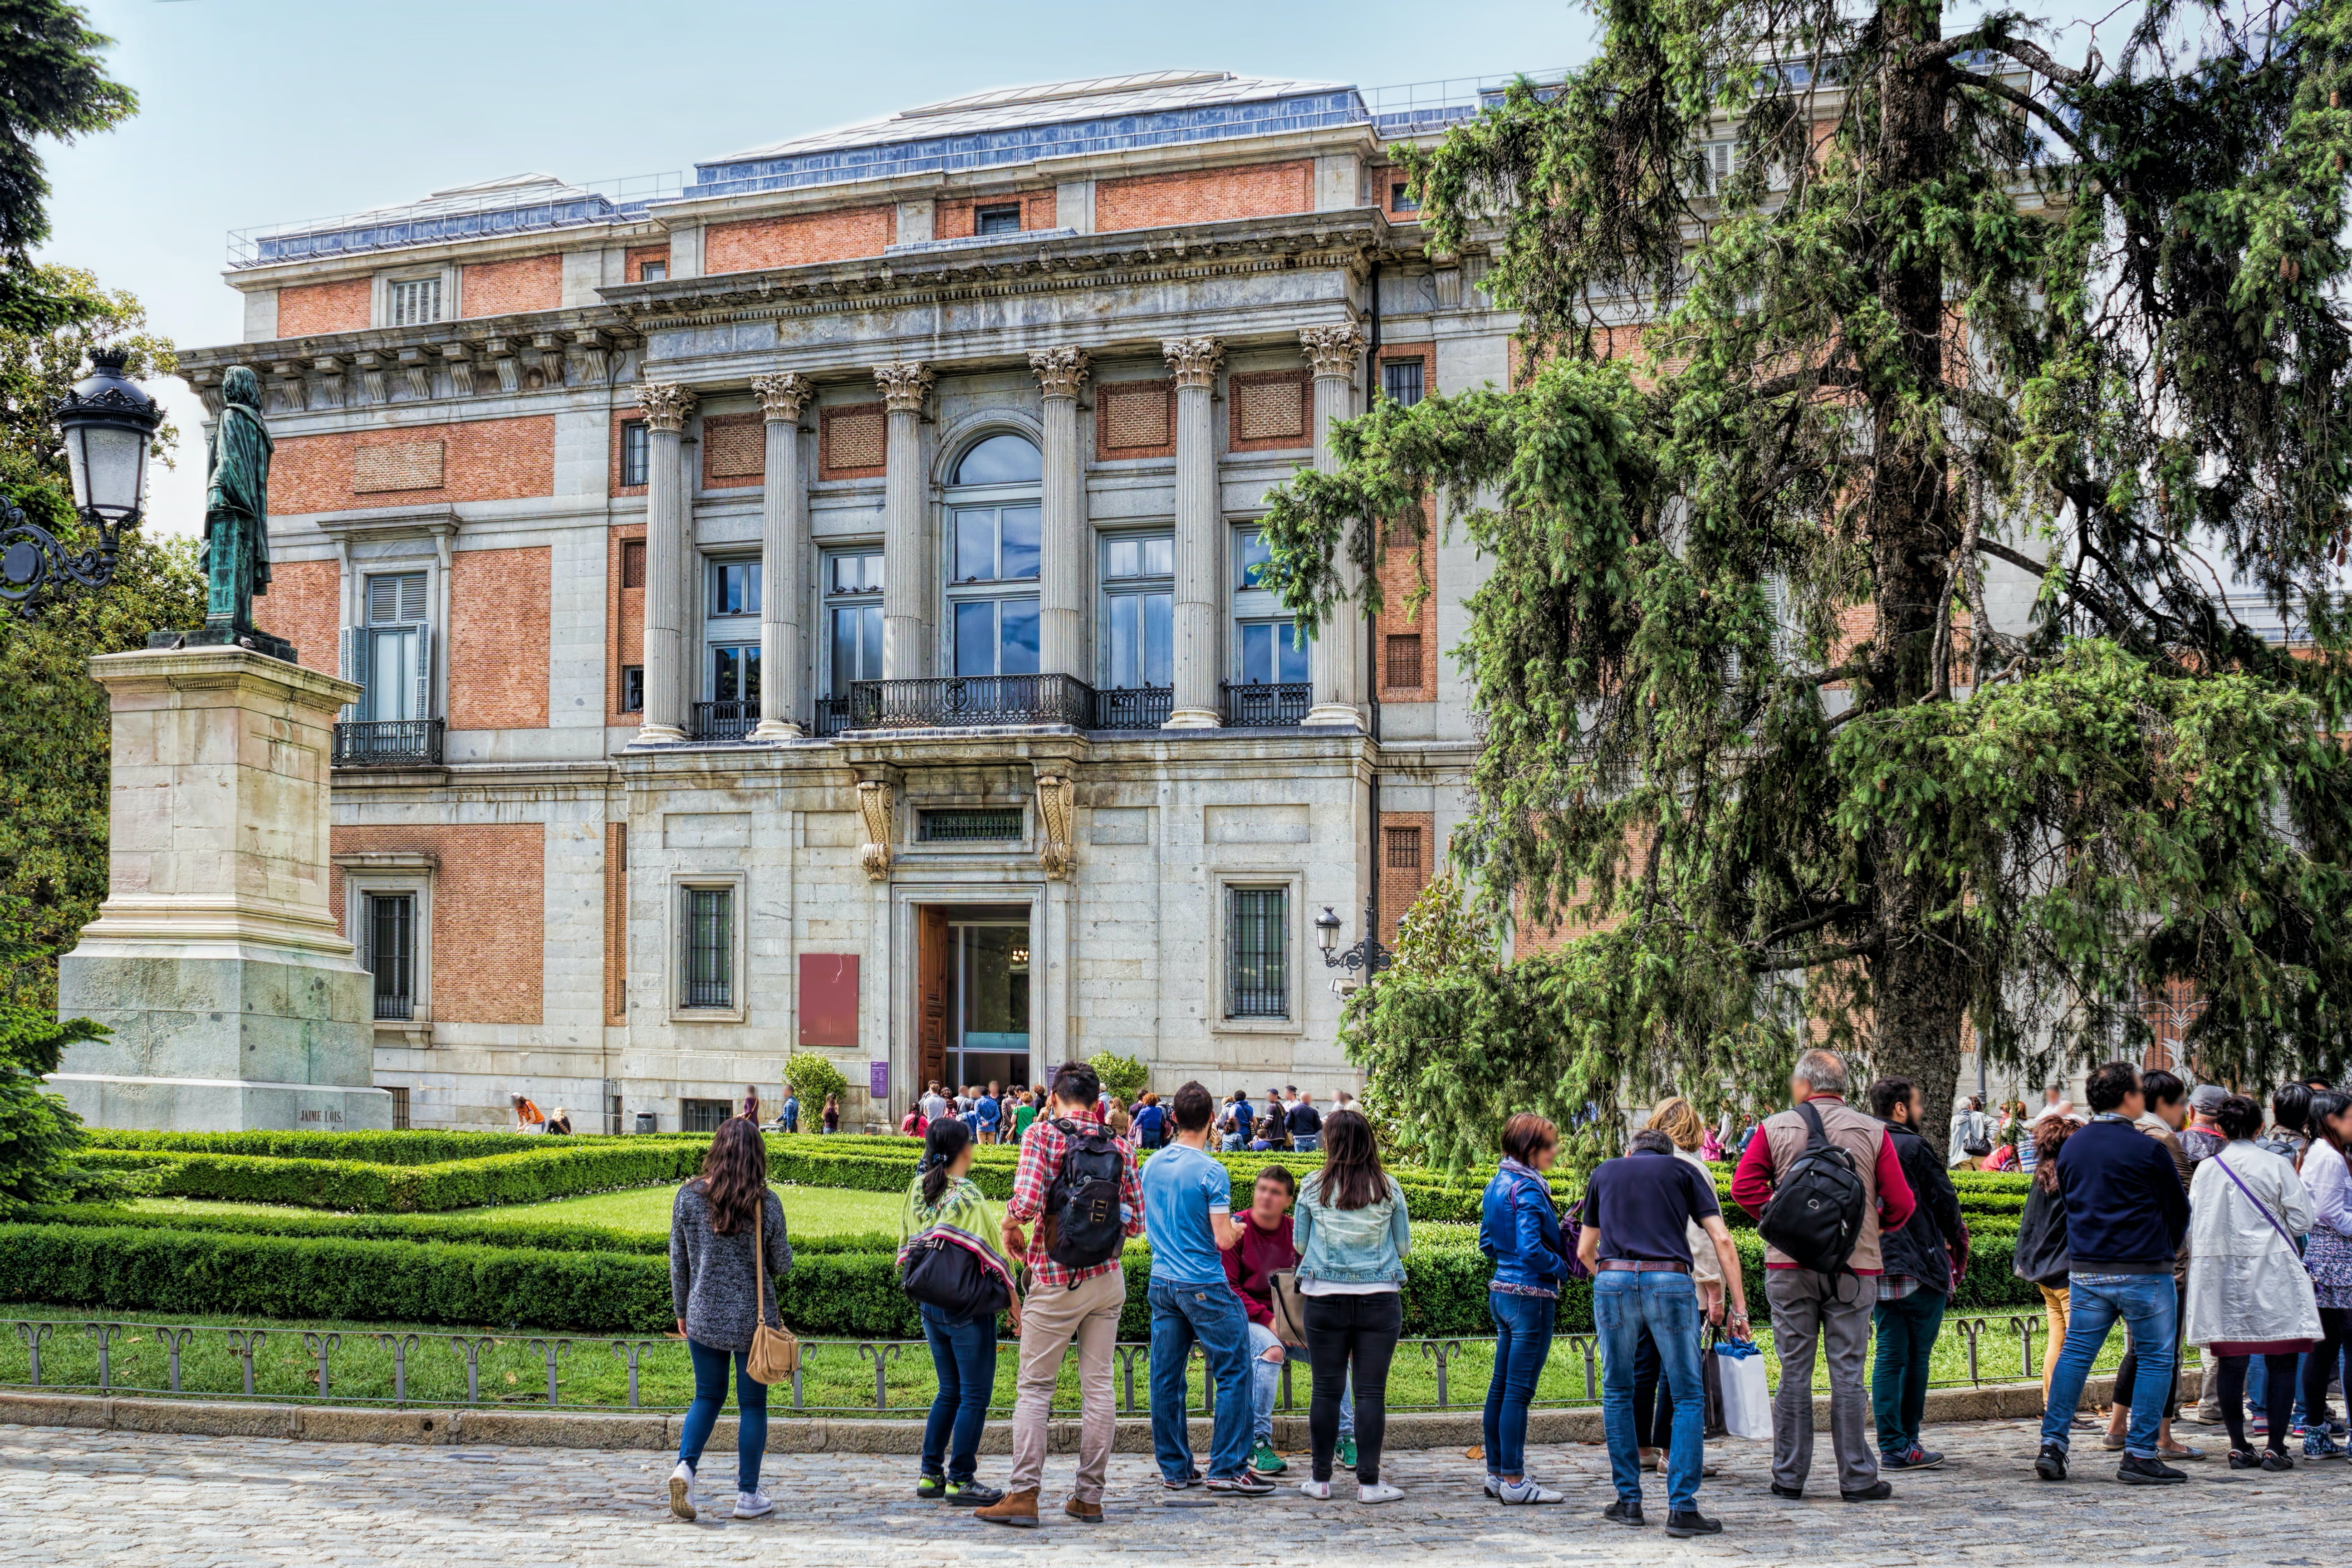 an analysis of the prado national museum in central madrid Temporal reach style location prado museum museo nacional del prado   neo-classical in style, centre of madrid national archaeological museum  an  overview on the history of national museums in spain, as well as an analysis of.